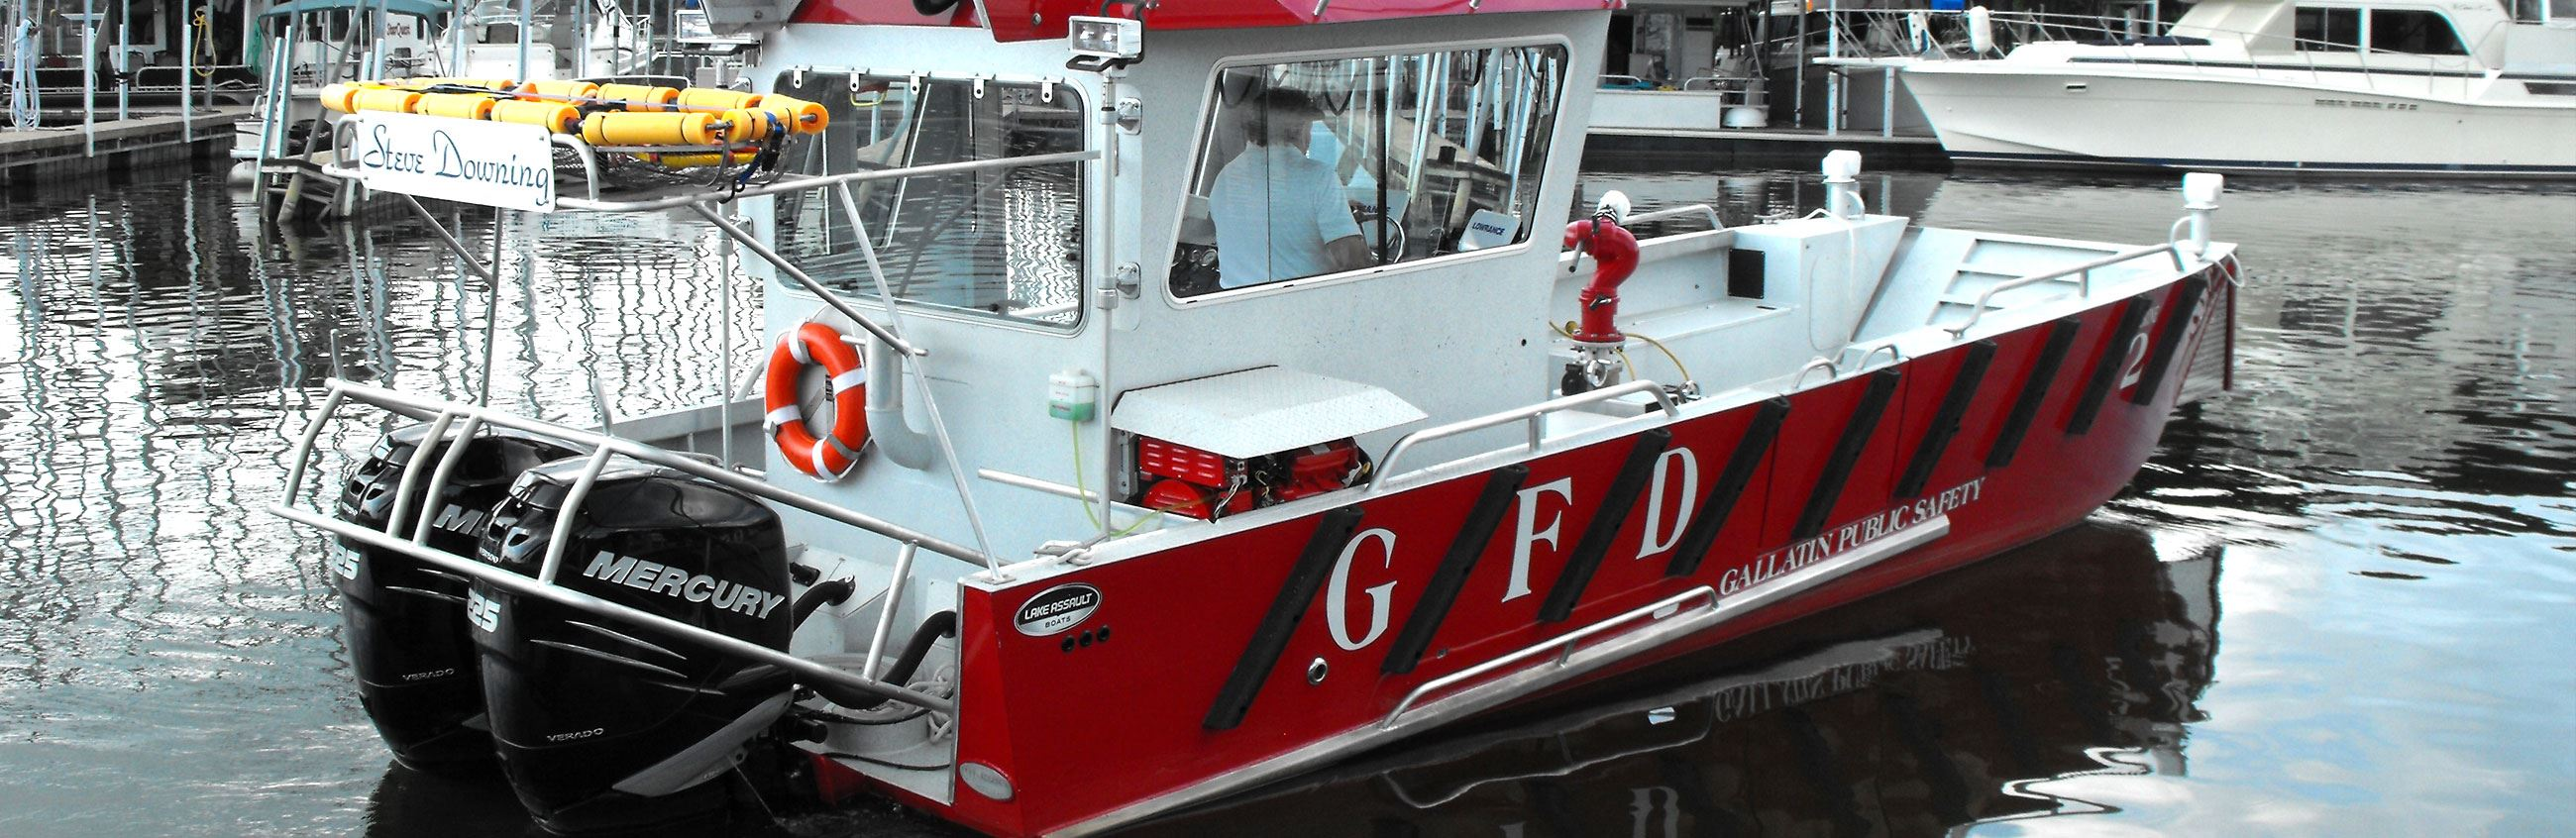 Gallatin Fire Boat at Marina